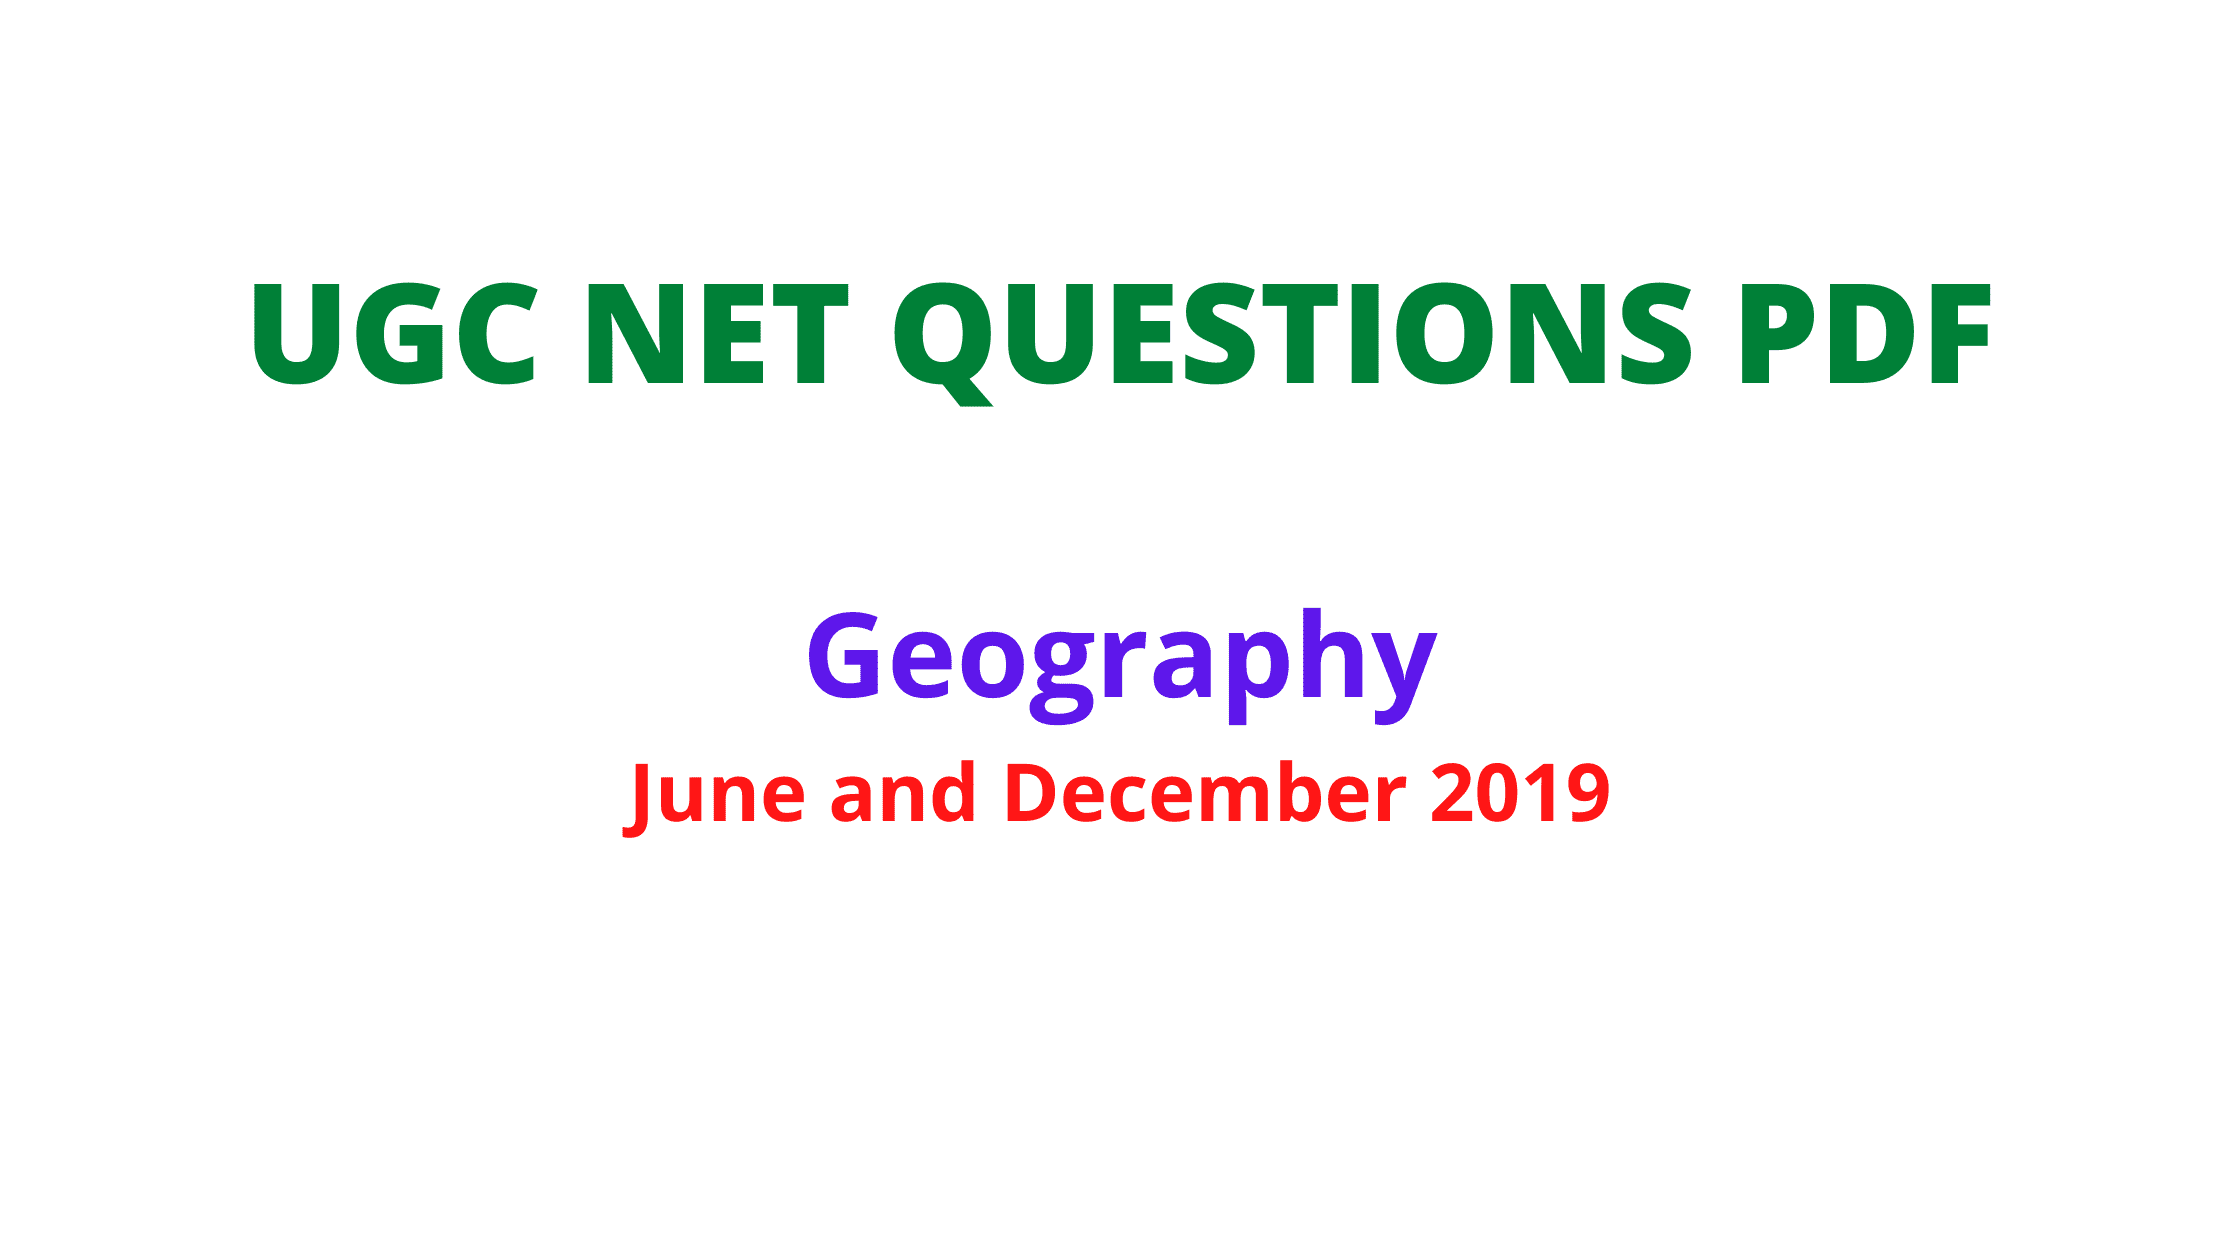 Ugc Net geography question paper June, December 2019 pdf